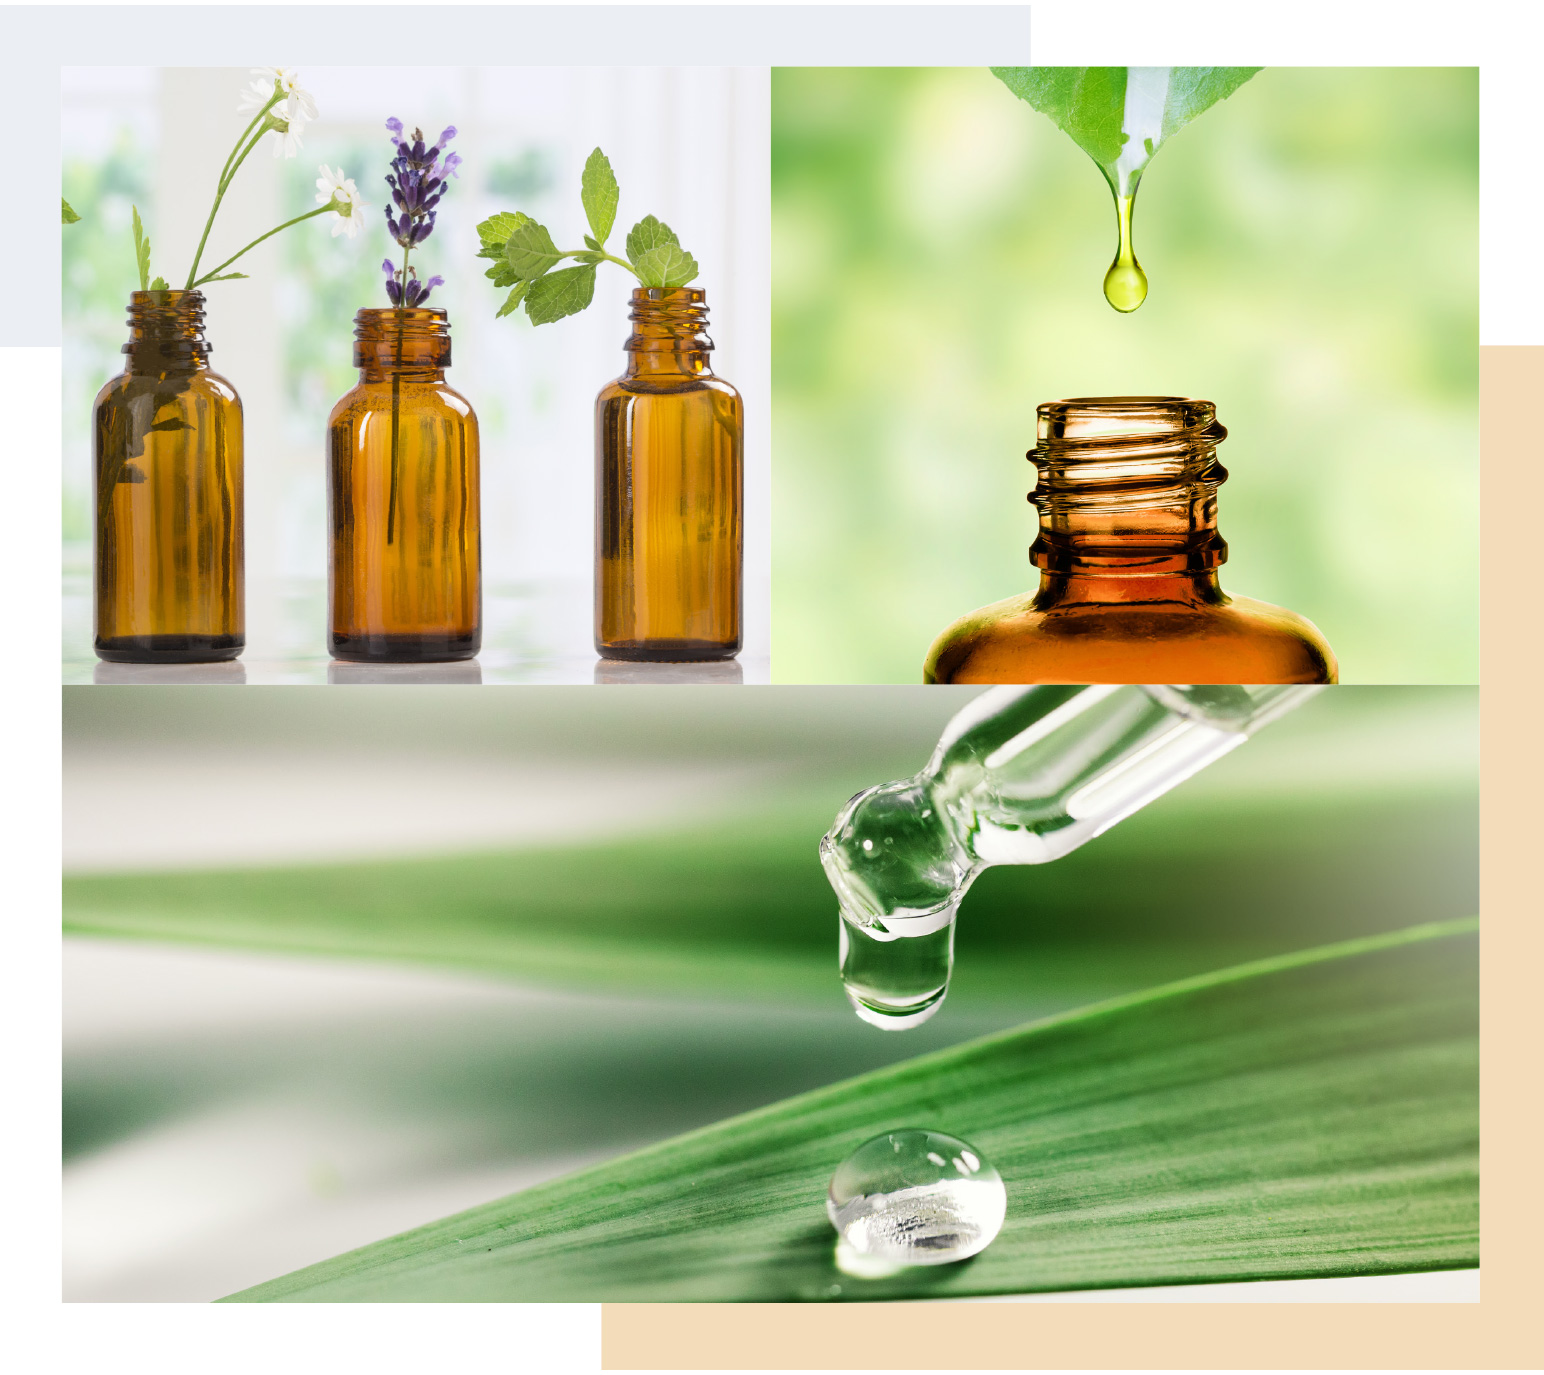 Oil bottles and oil dropper on a green background